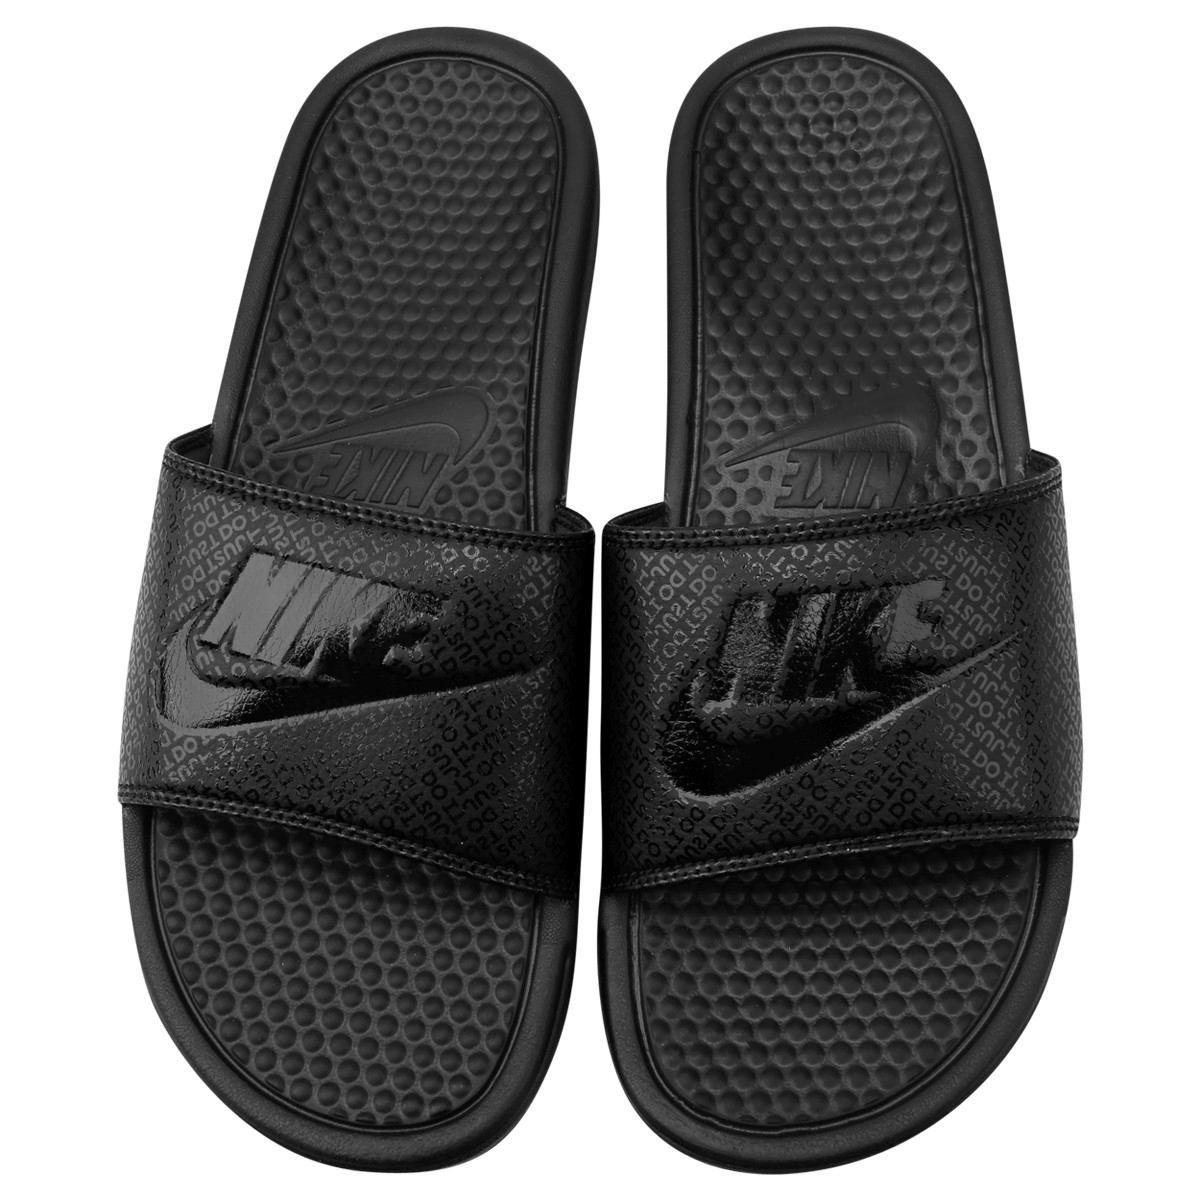 23346fe585 chinelo sandália nike benassi just do it original + nota f. Carregando zoom.